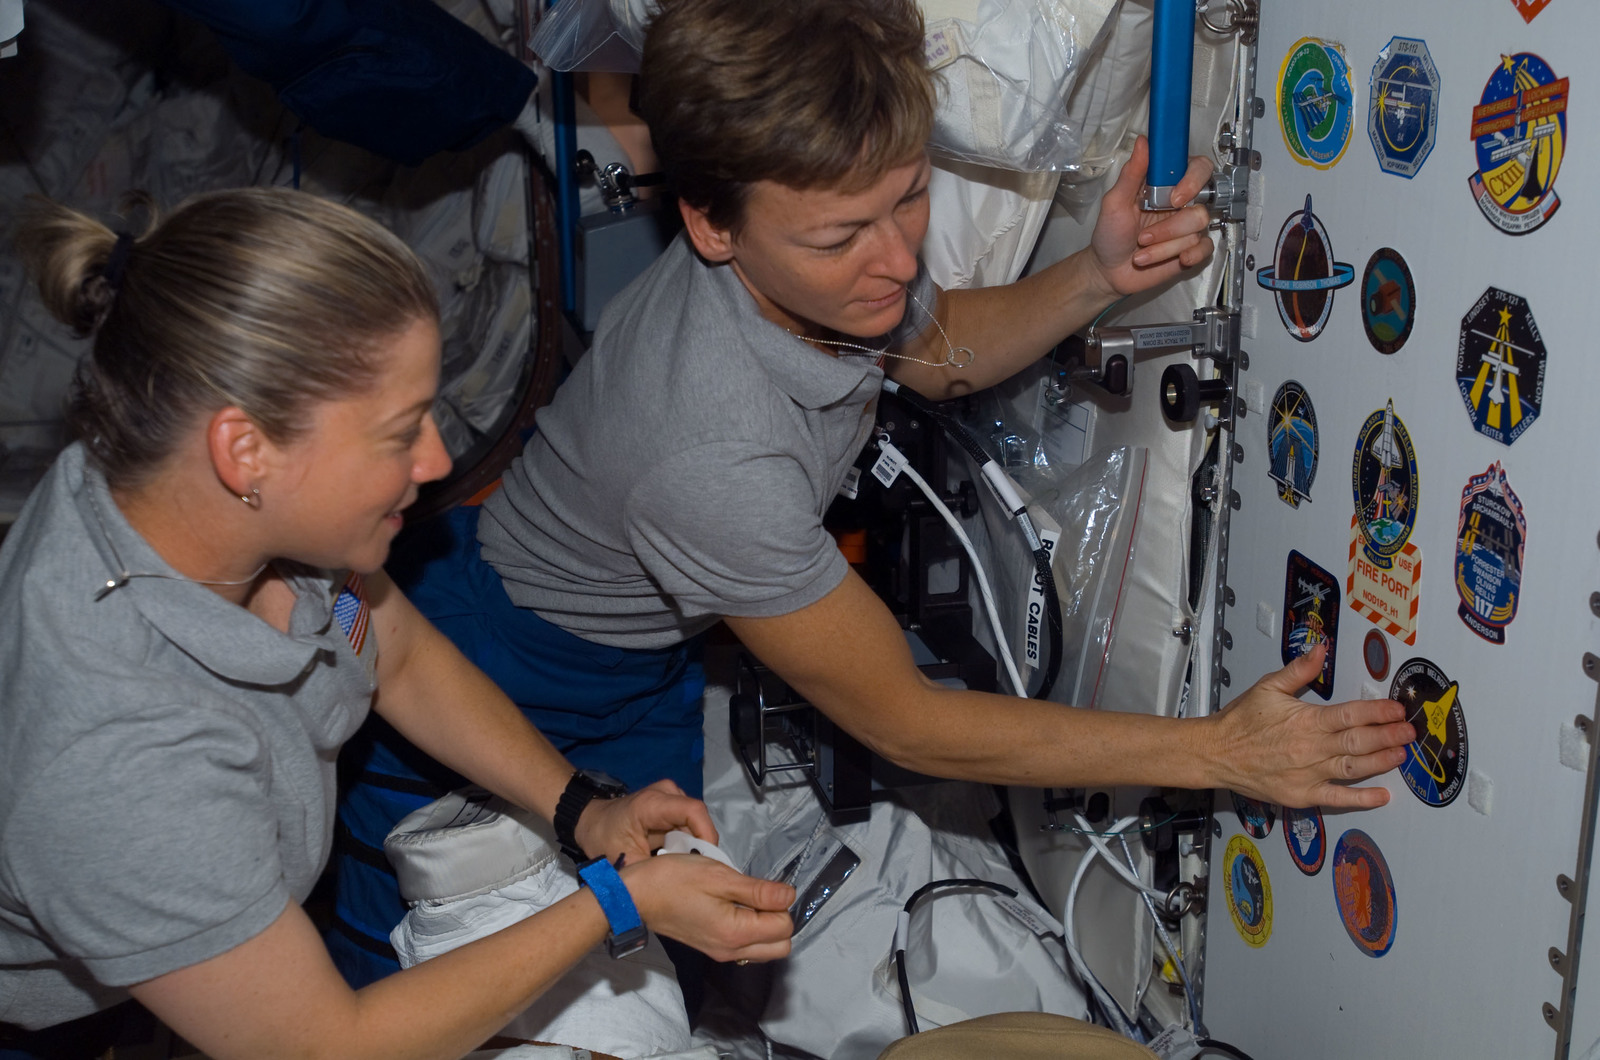 S120E008352 - STS-120 - STS-120 and Expedition 16 Commanders in Node 1/Unity module